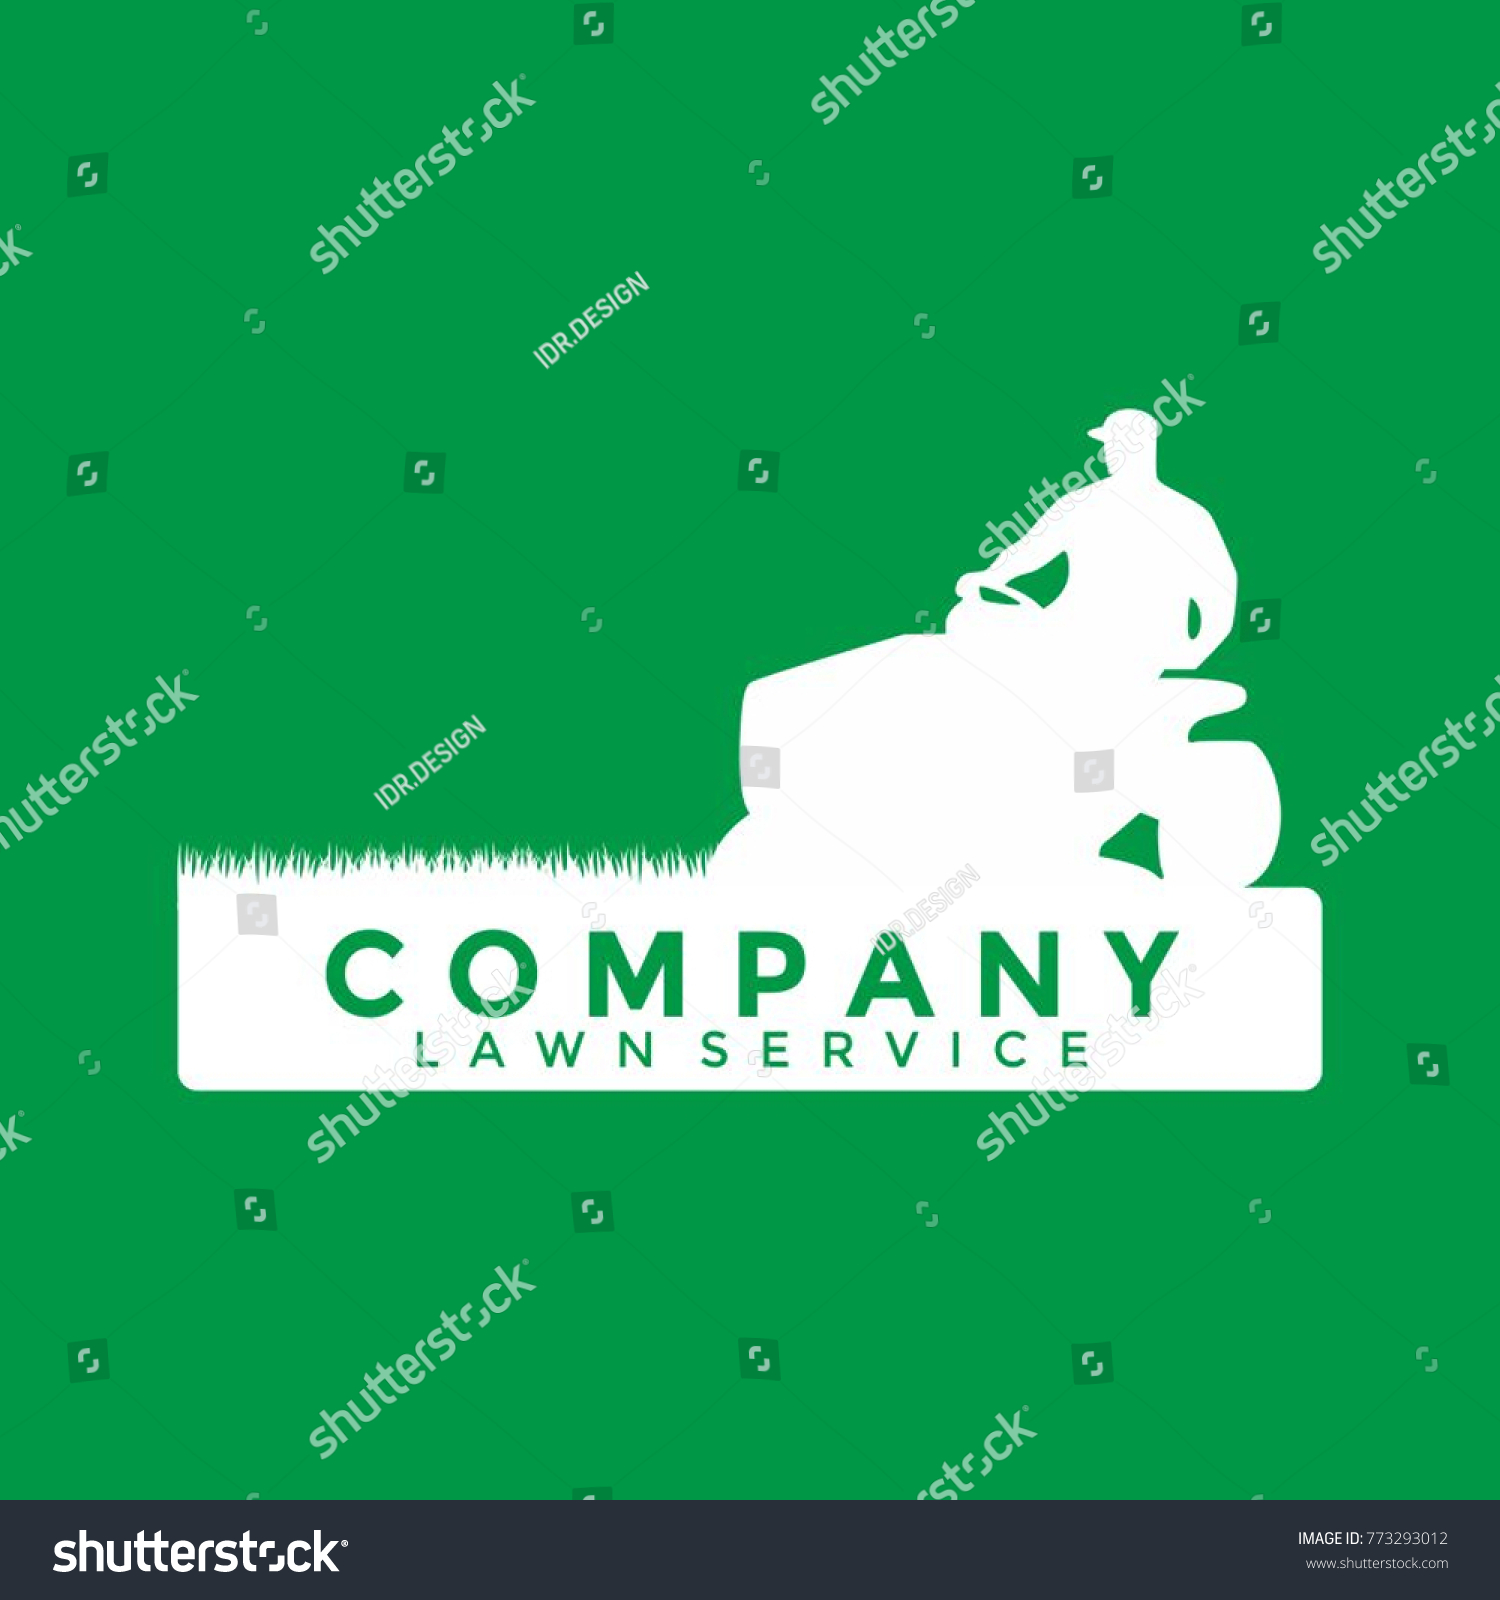 lawn service logo template stock vector royalty free 773293012